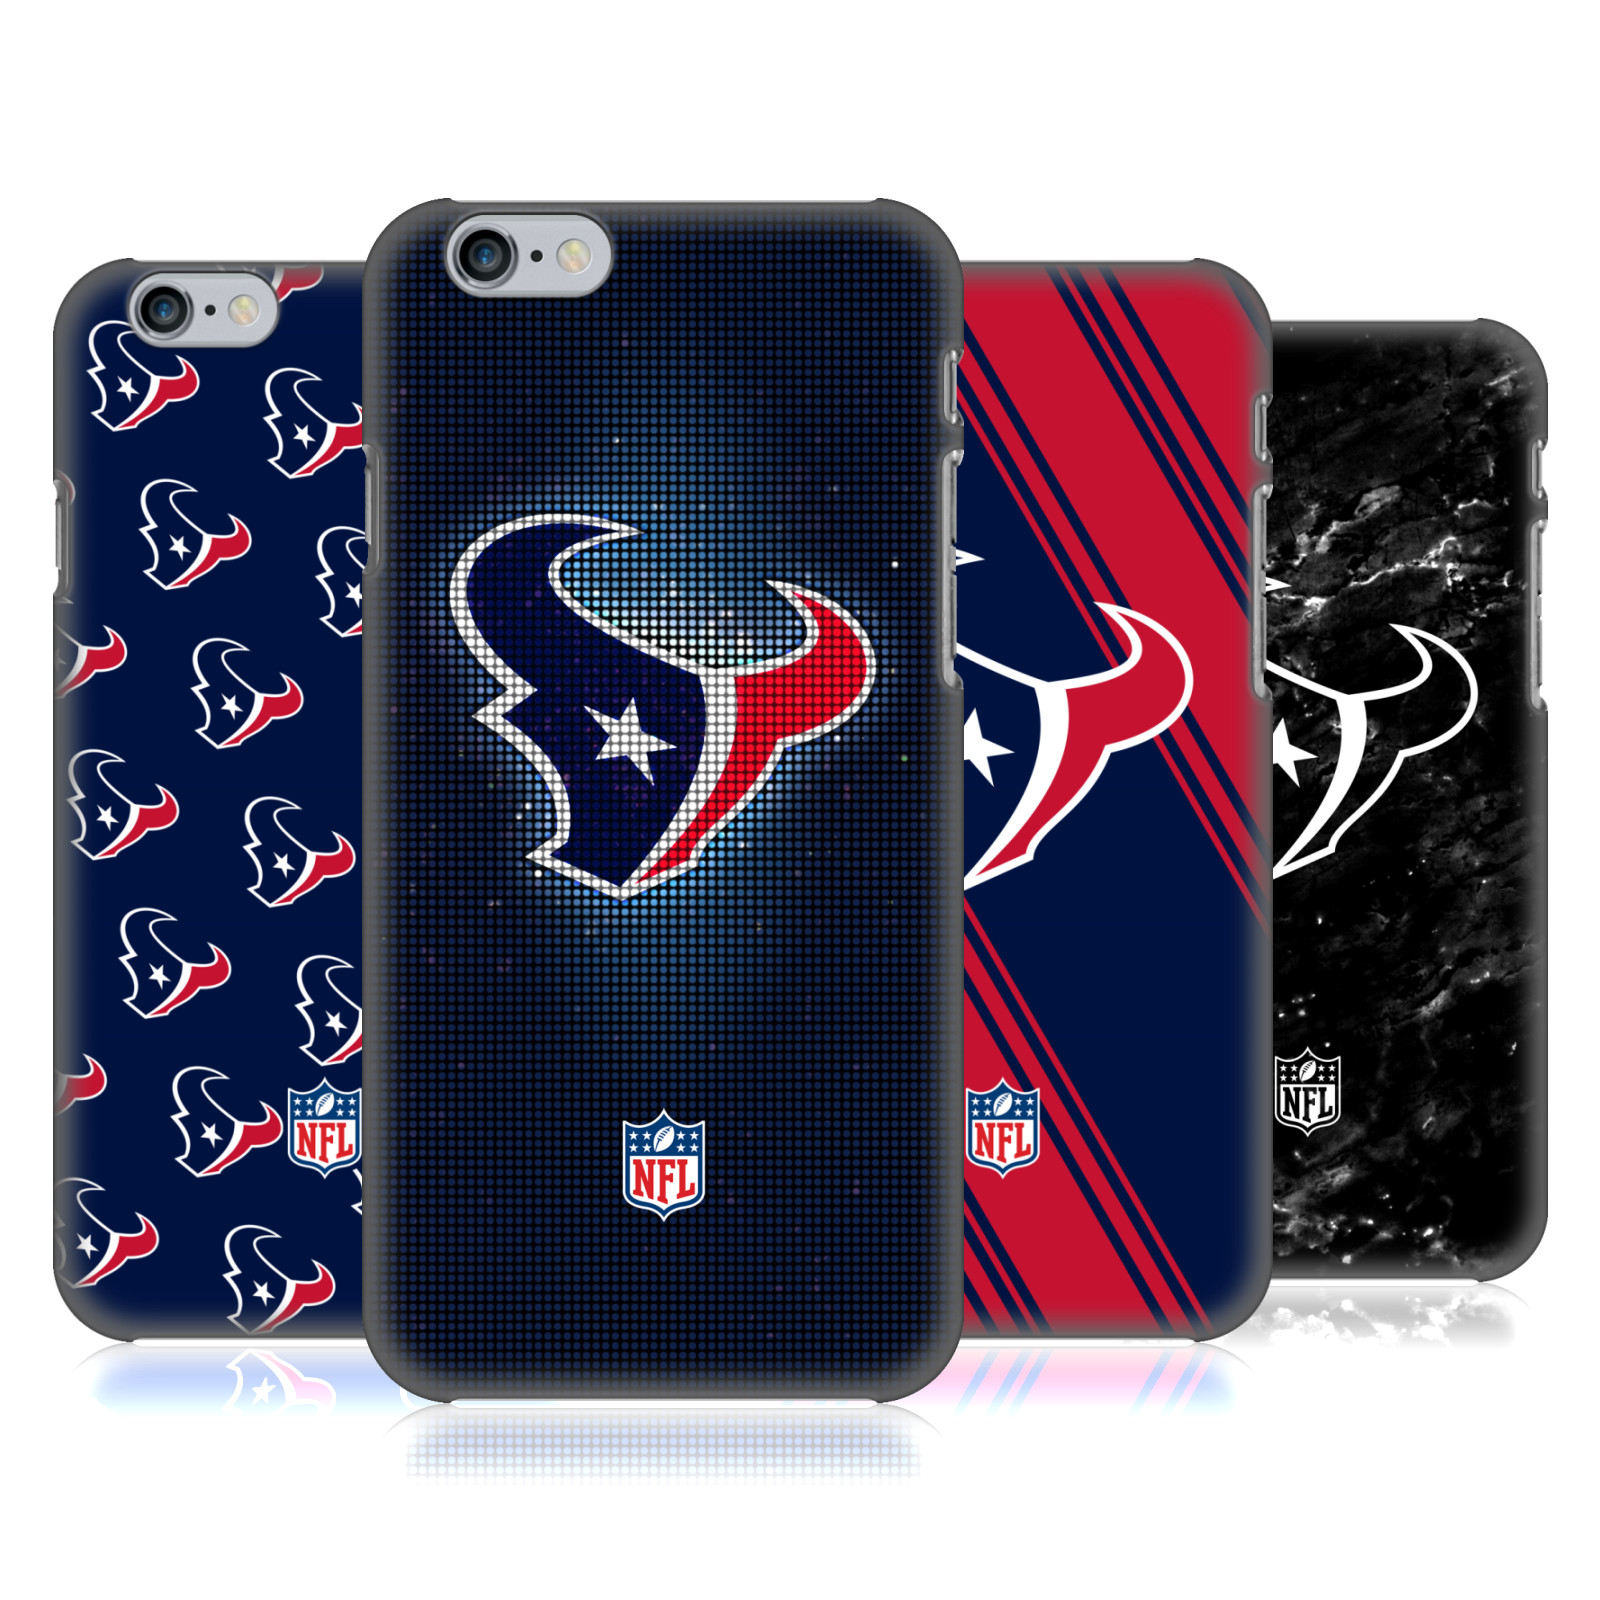 NFL 2017/18 Houston Texans